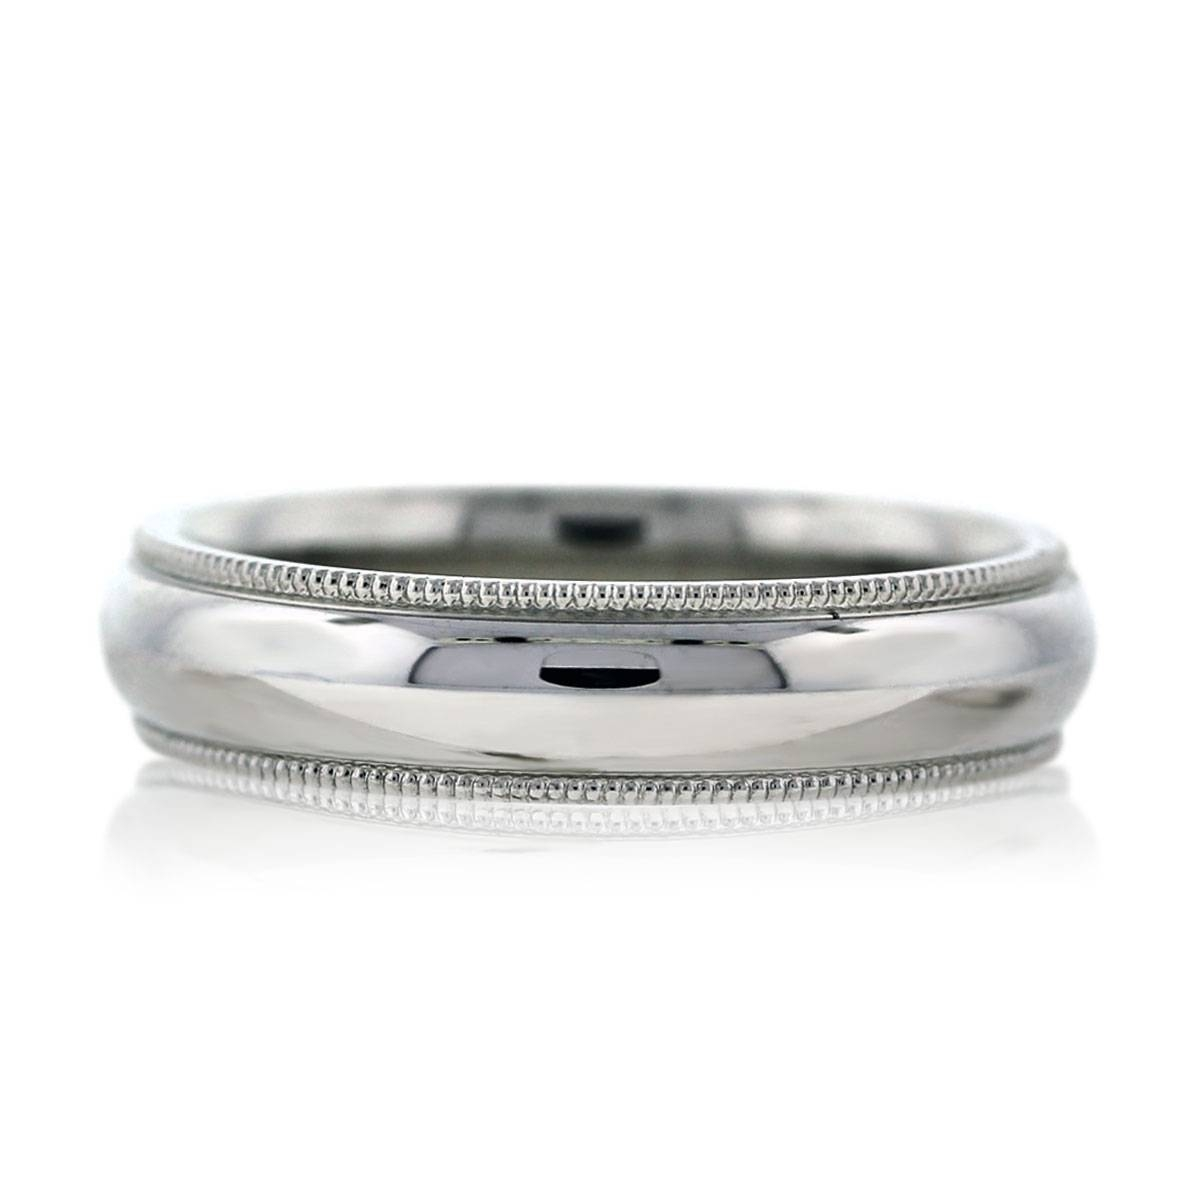 14K White Gold Milgrain Mens Wedding Band Ring Boca Raton Within Mens Milgrain Wedding Bands (Gallery 2 of 15)